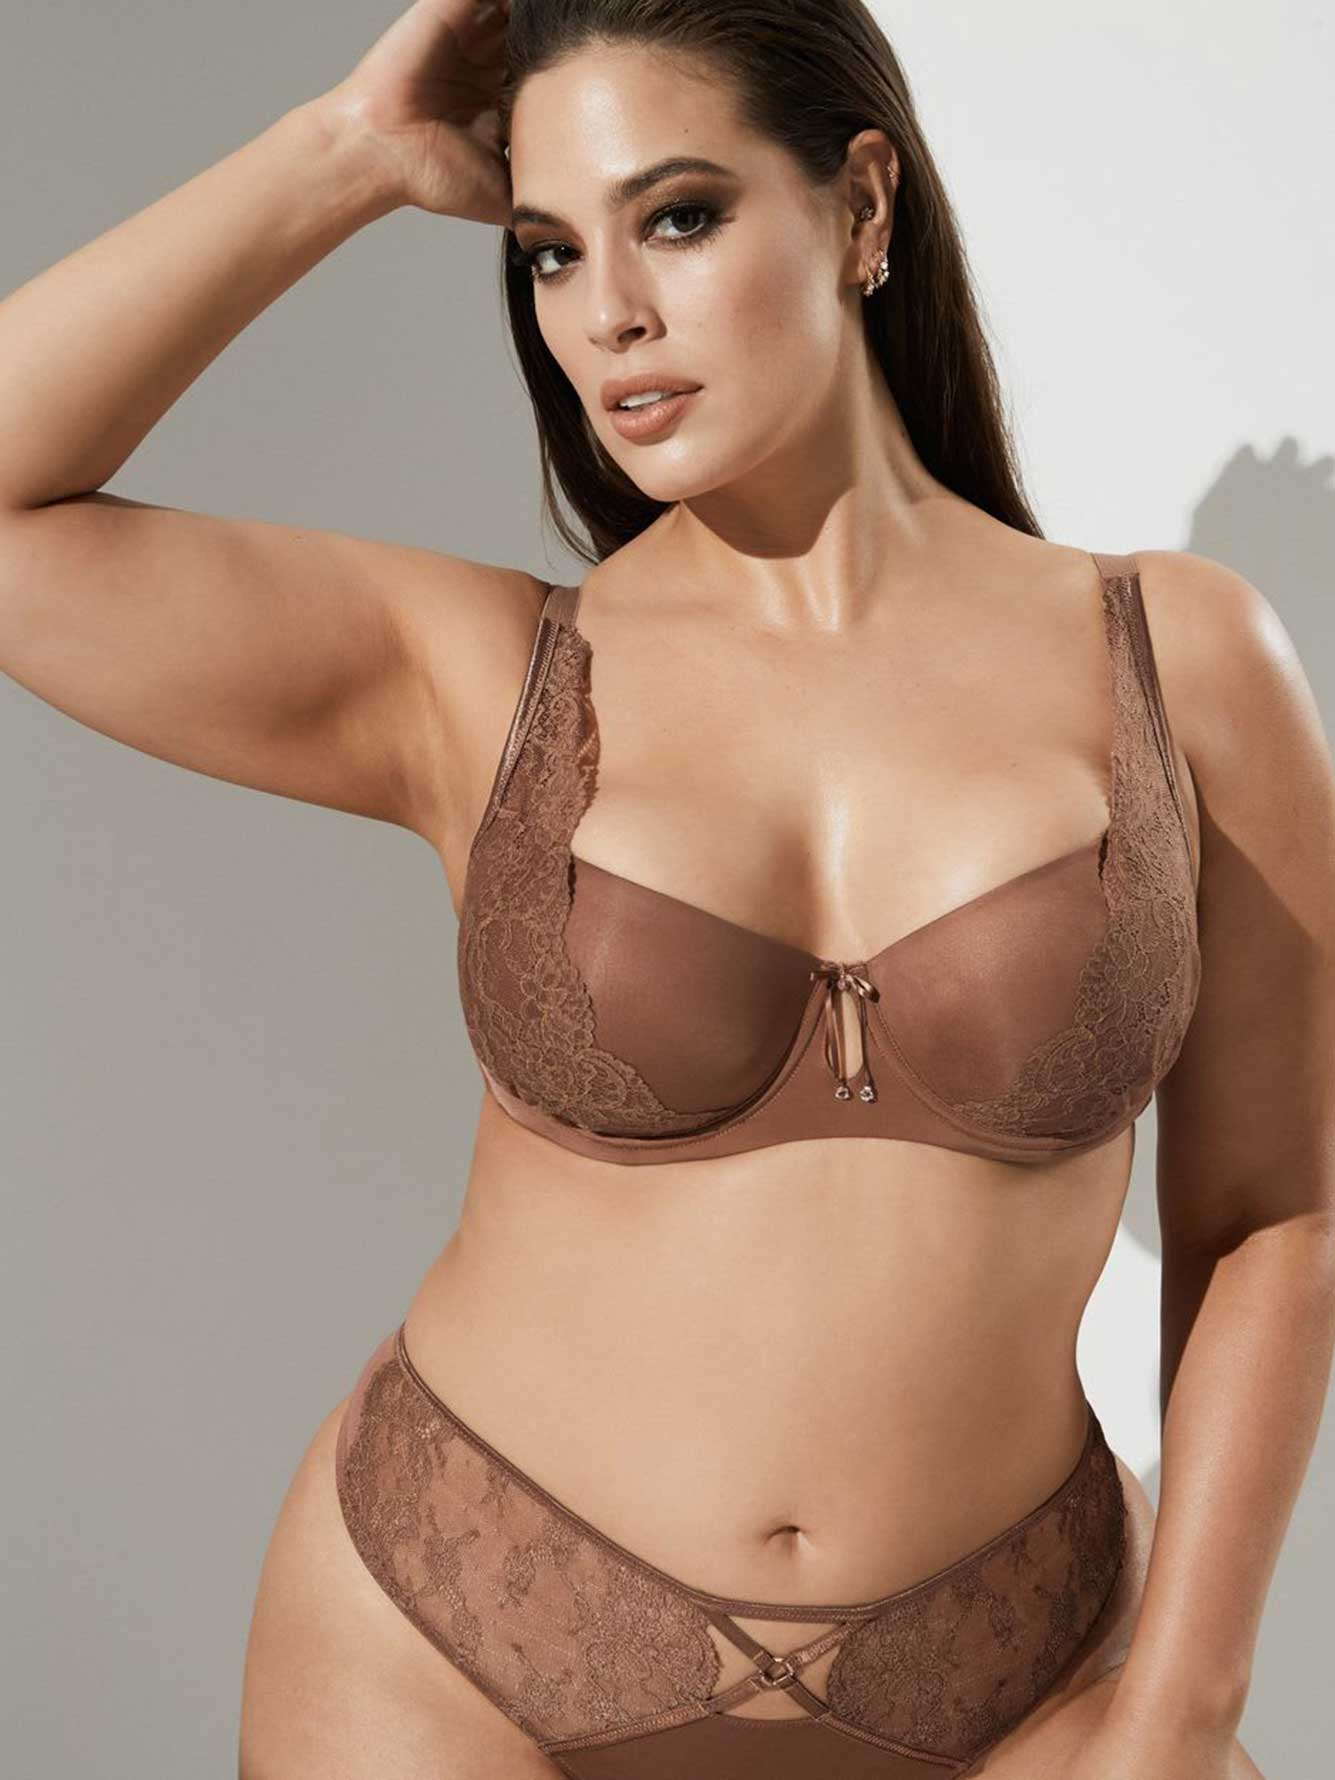 ae0a7d4dad Ashley Graham Micro Fiber and Lace Diva Demi Cup Bra